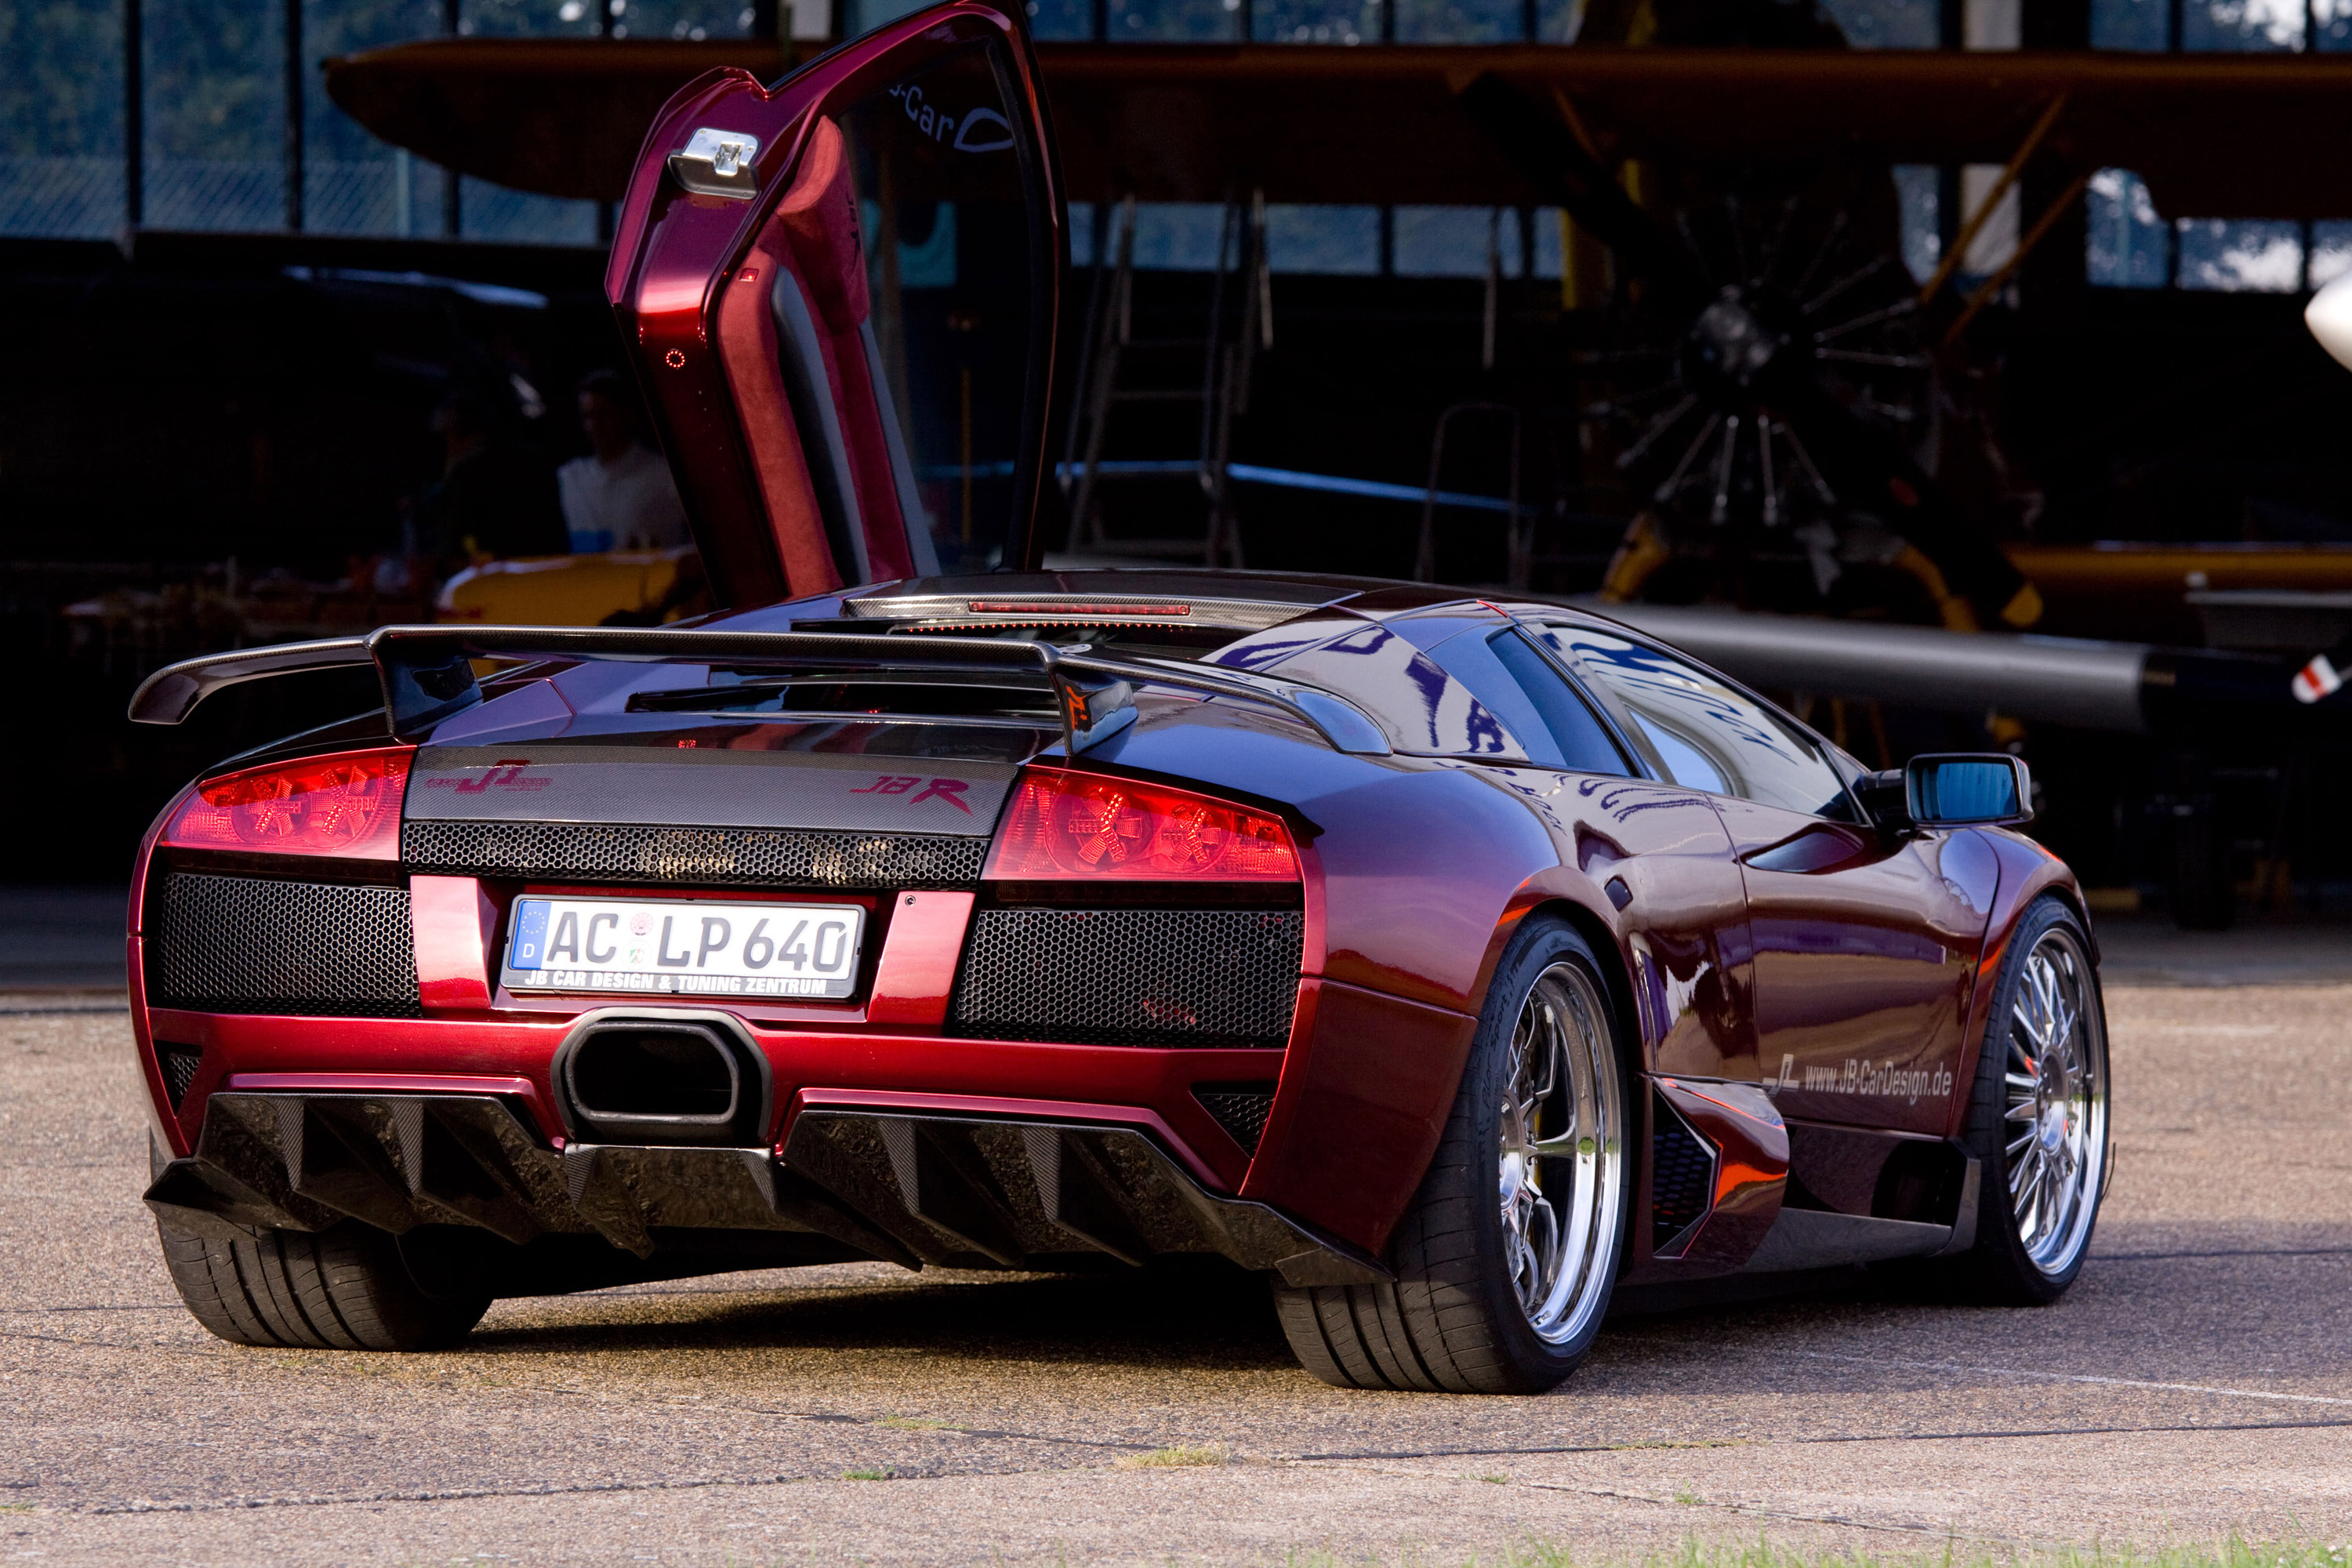 jb-car-design-lamborghini-lp-640-jb-r-06.jpg